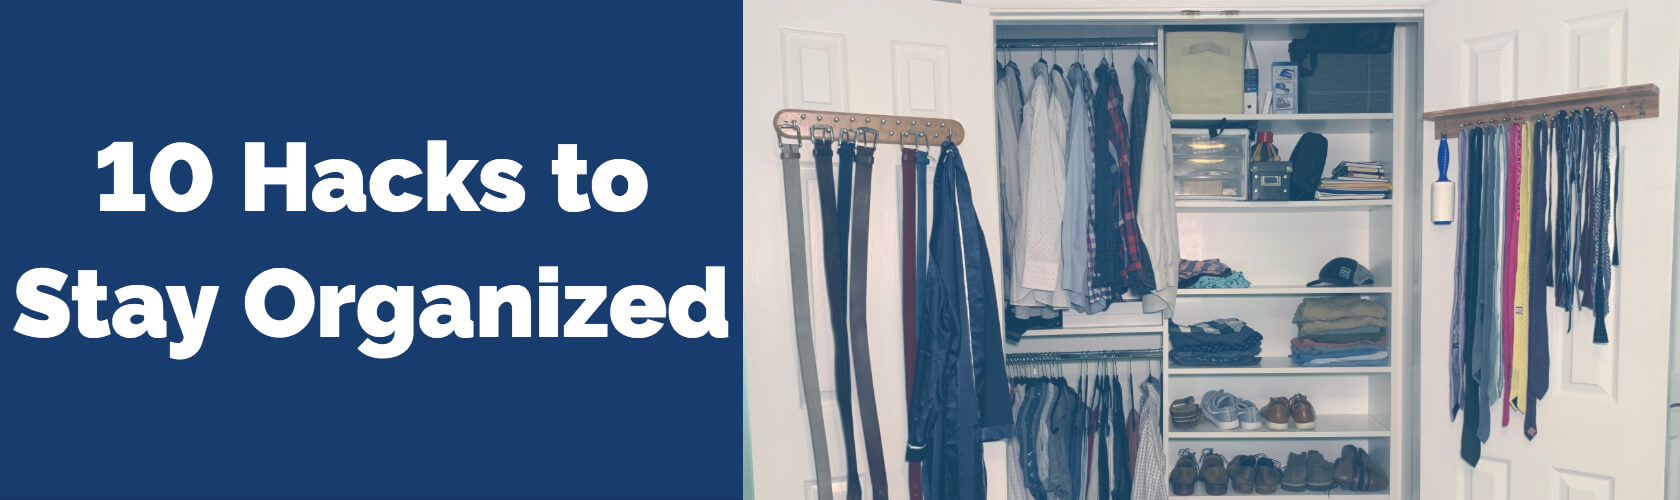 keep your stuff organized with these easy and quick hacks